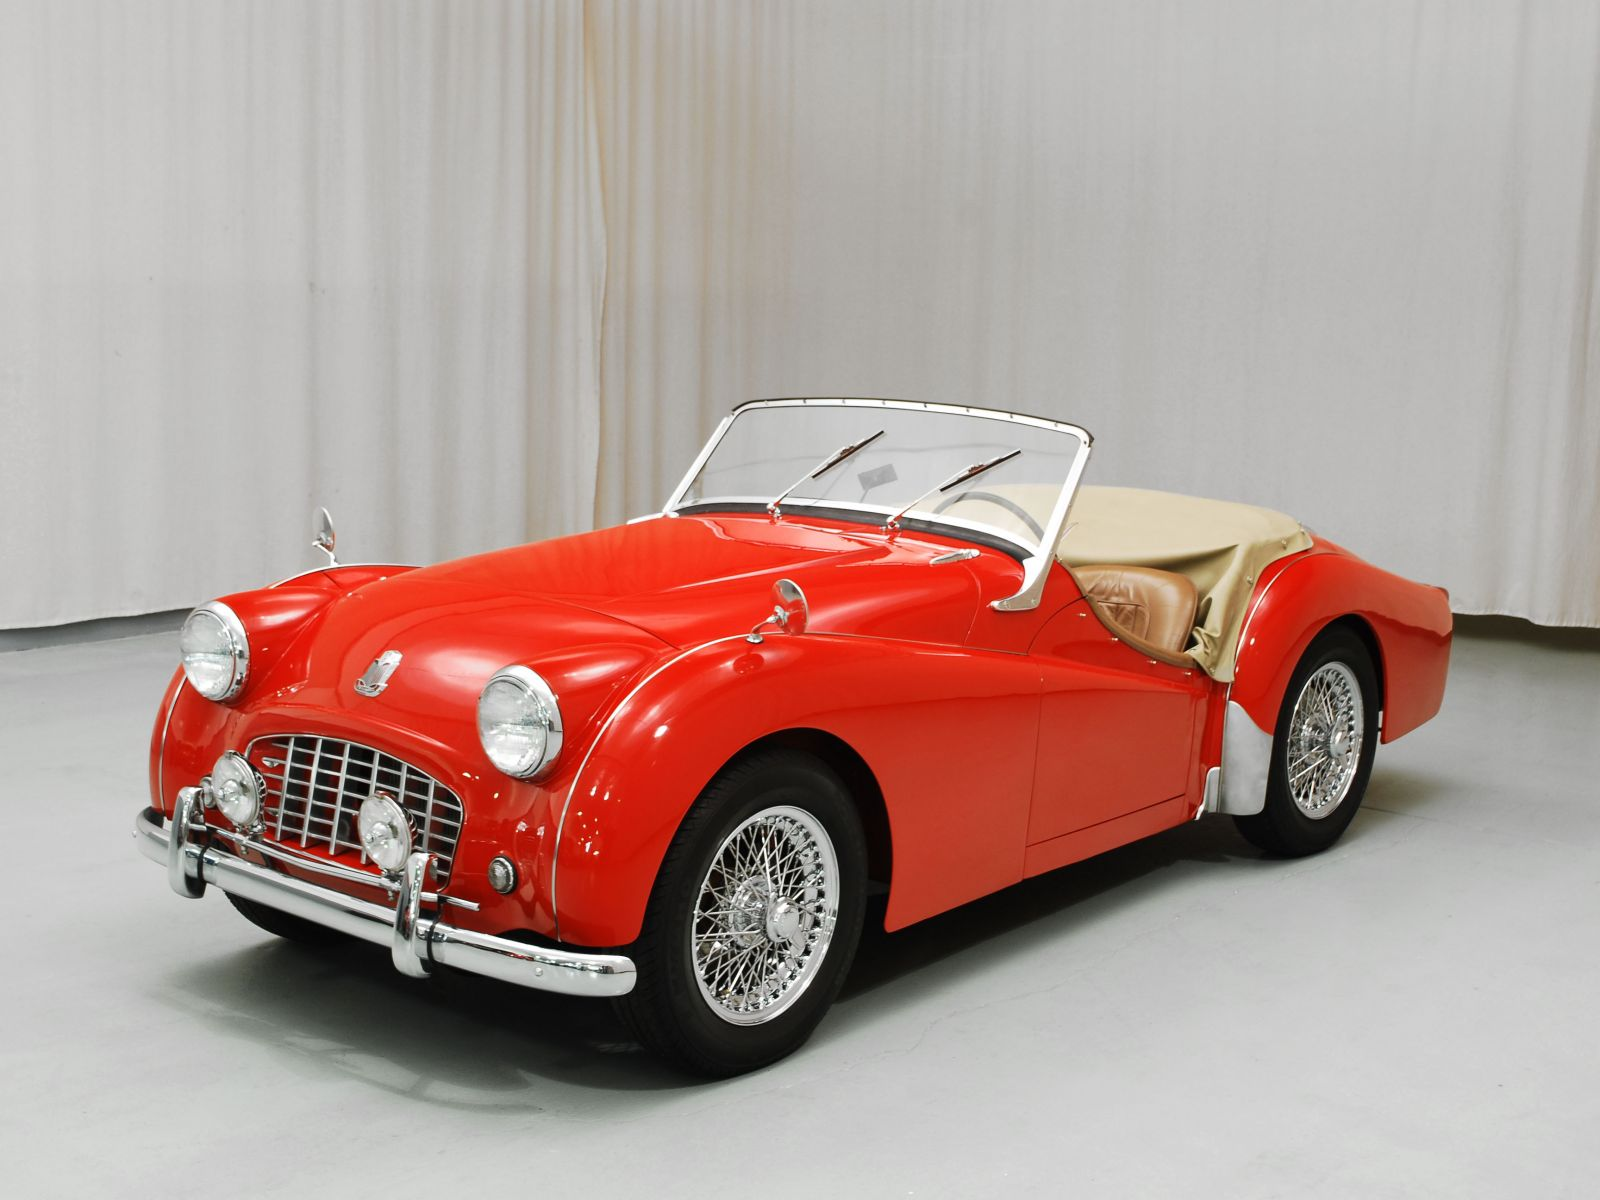 Buying And Selling Cars >> 1957 Triumph T3 Roadster - Hyman Ltd. Classic Cars